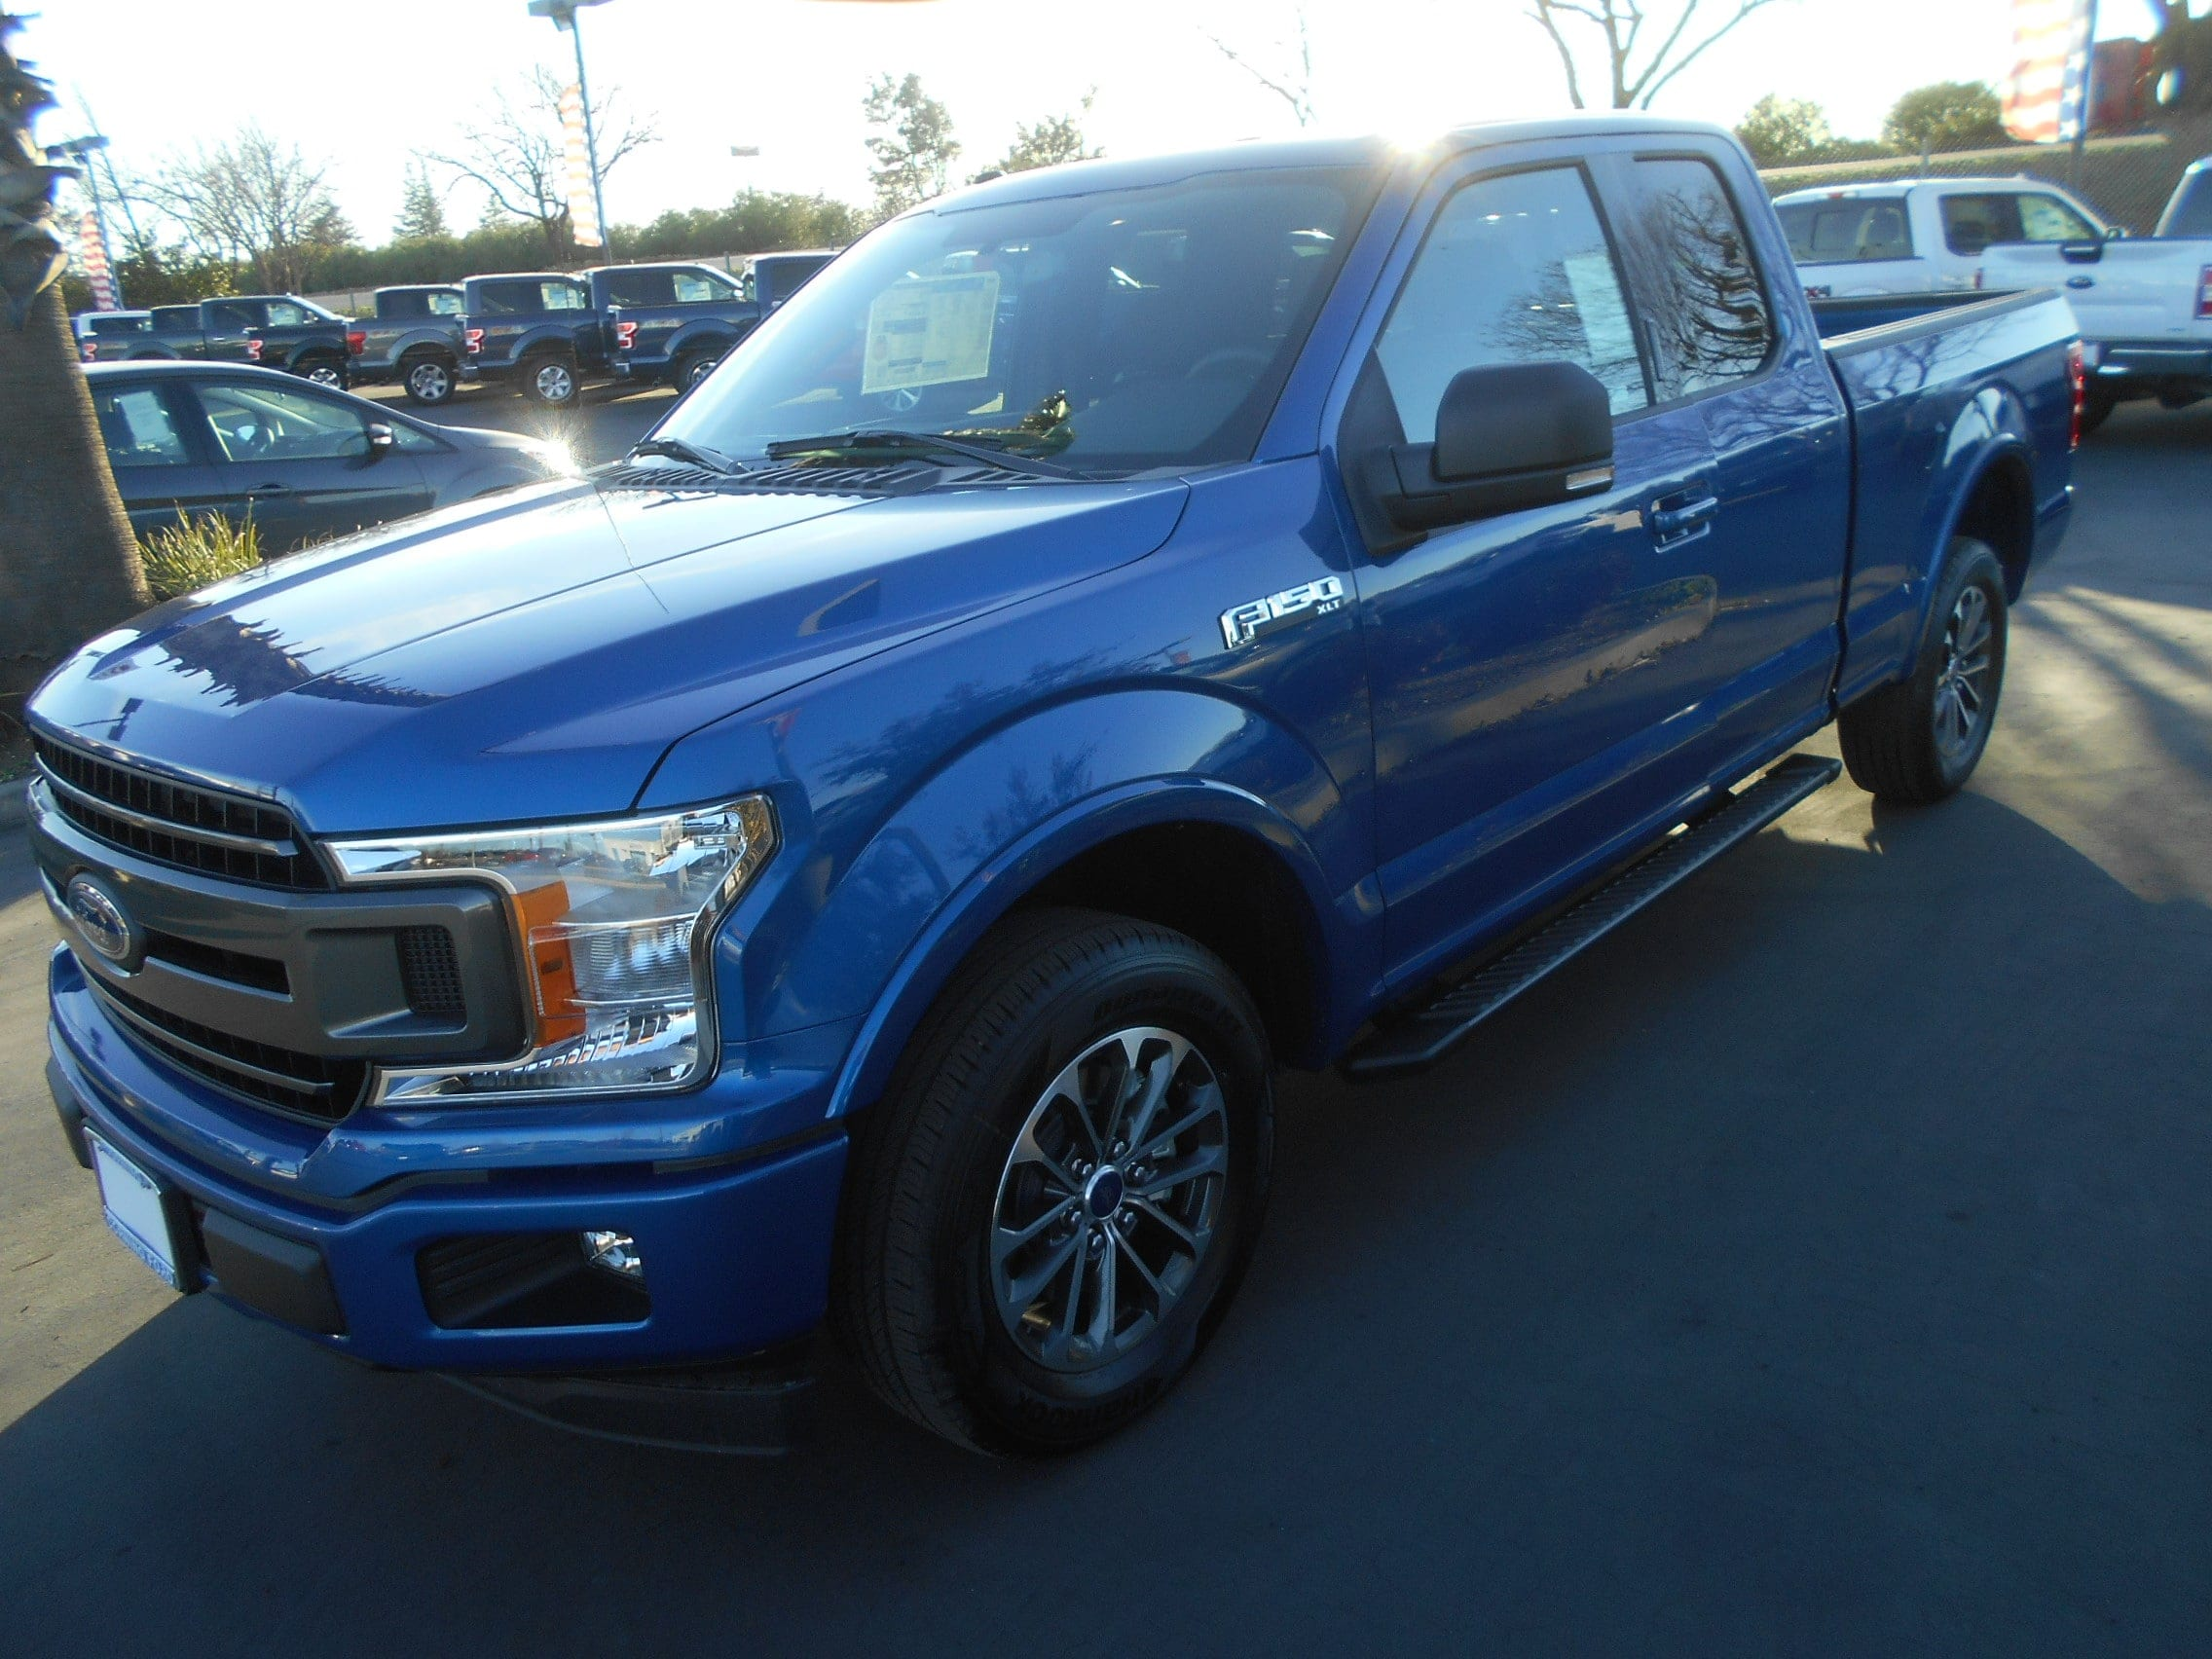 Featured new Ford cars, trucks, and SUVs 2018 Ford F-150 XLT Super Cab 6 1/2 Bed for sale near you in Corning, CA